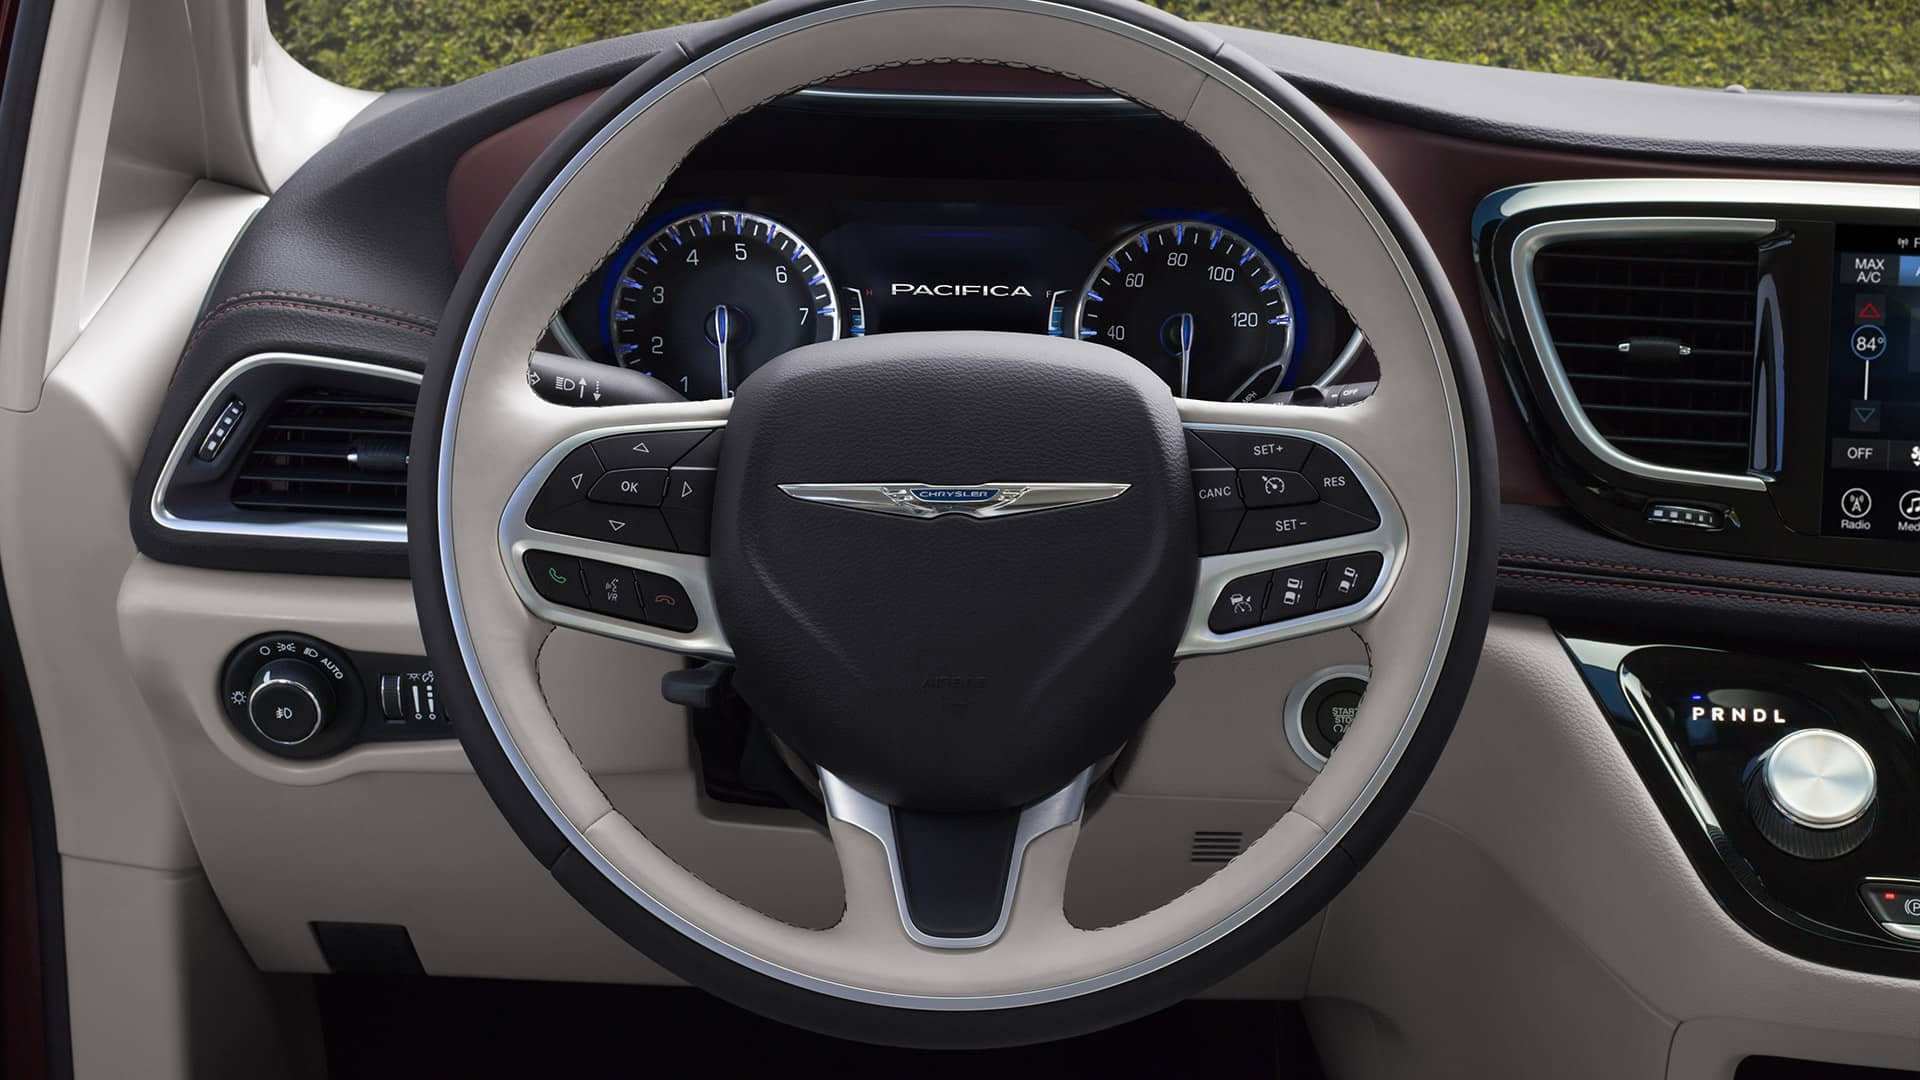 New Chrysler Pacifica Interior image 1